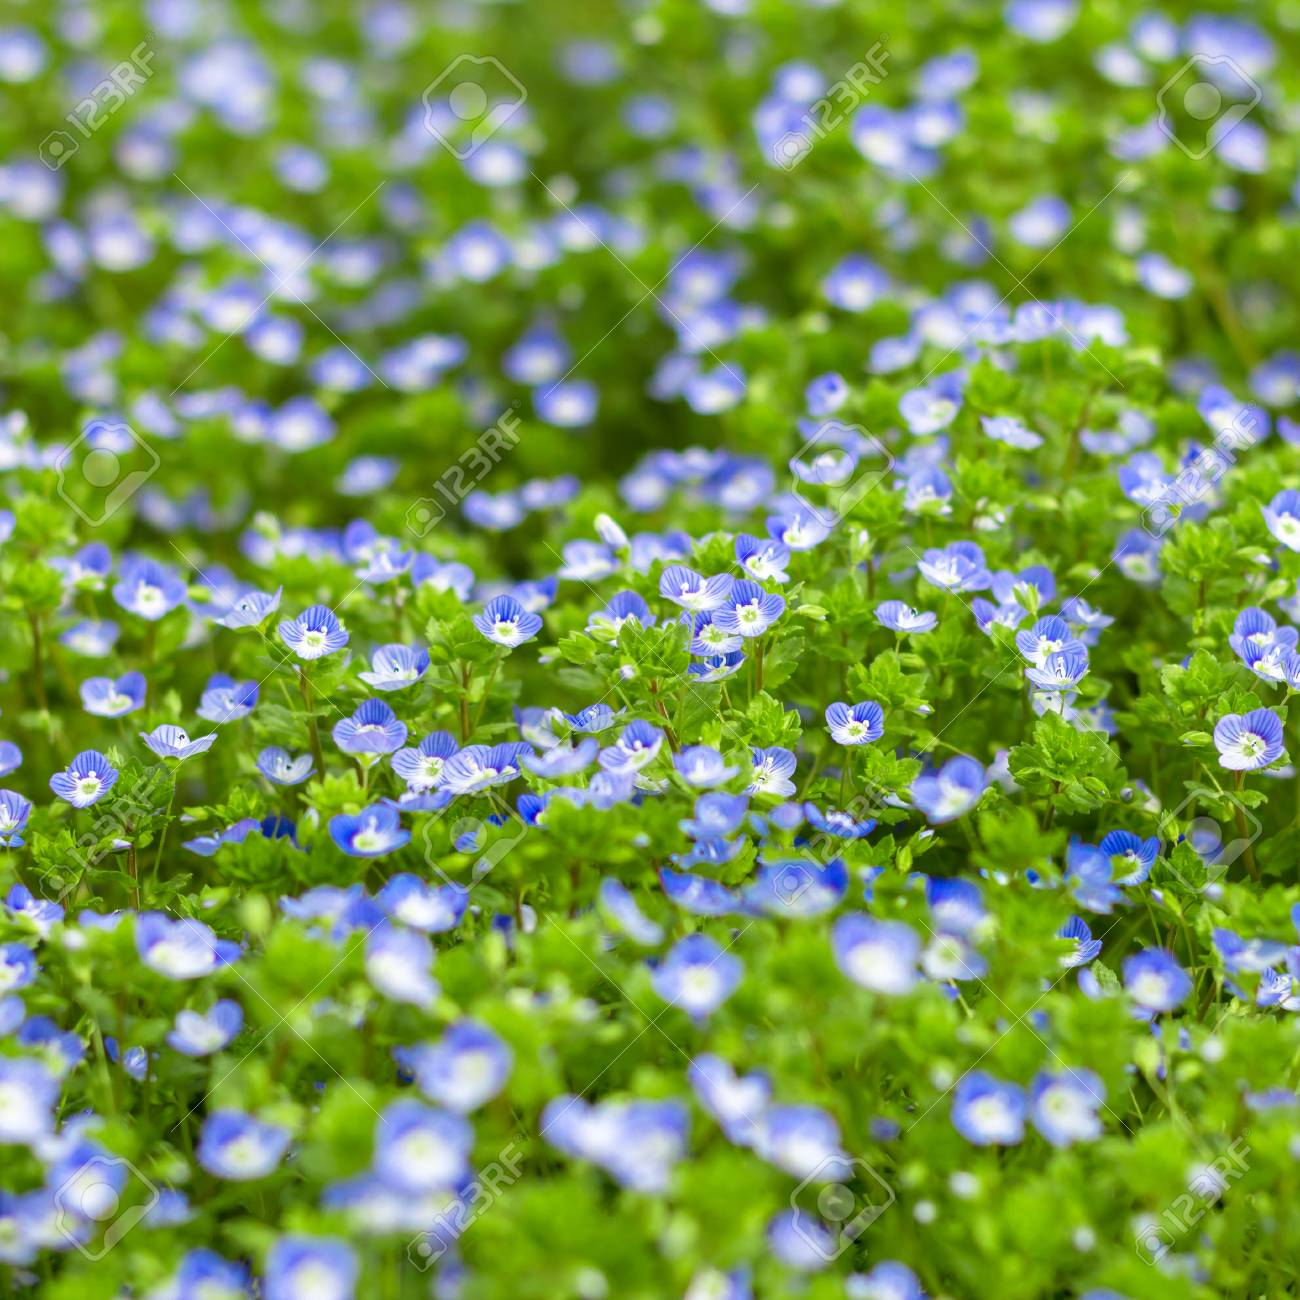 Blue Small Wildflowers Fresh Small Light Blue Flowers Forget Me